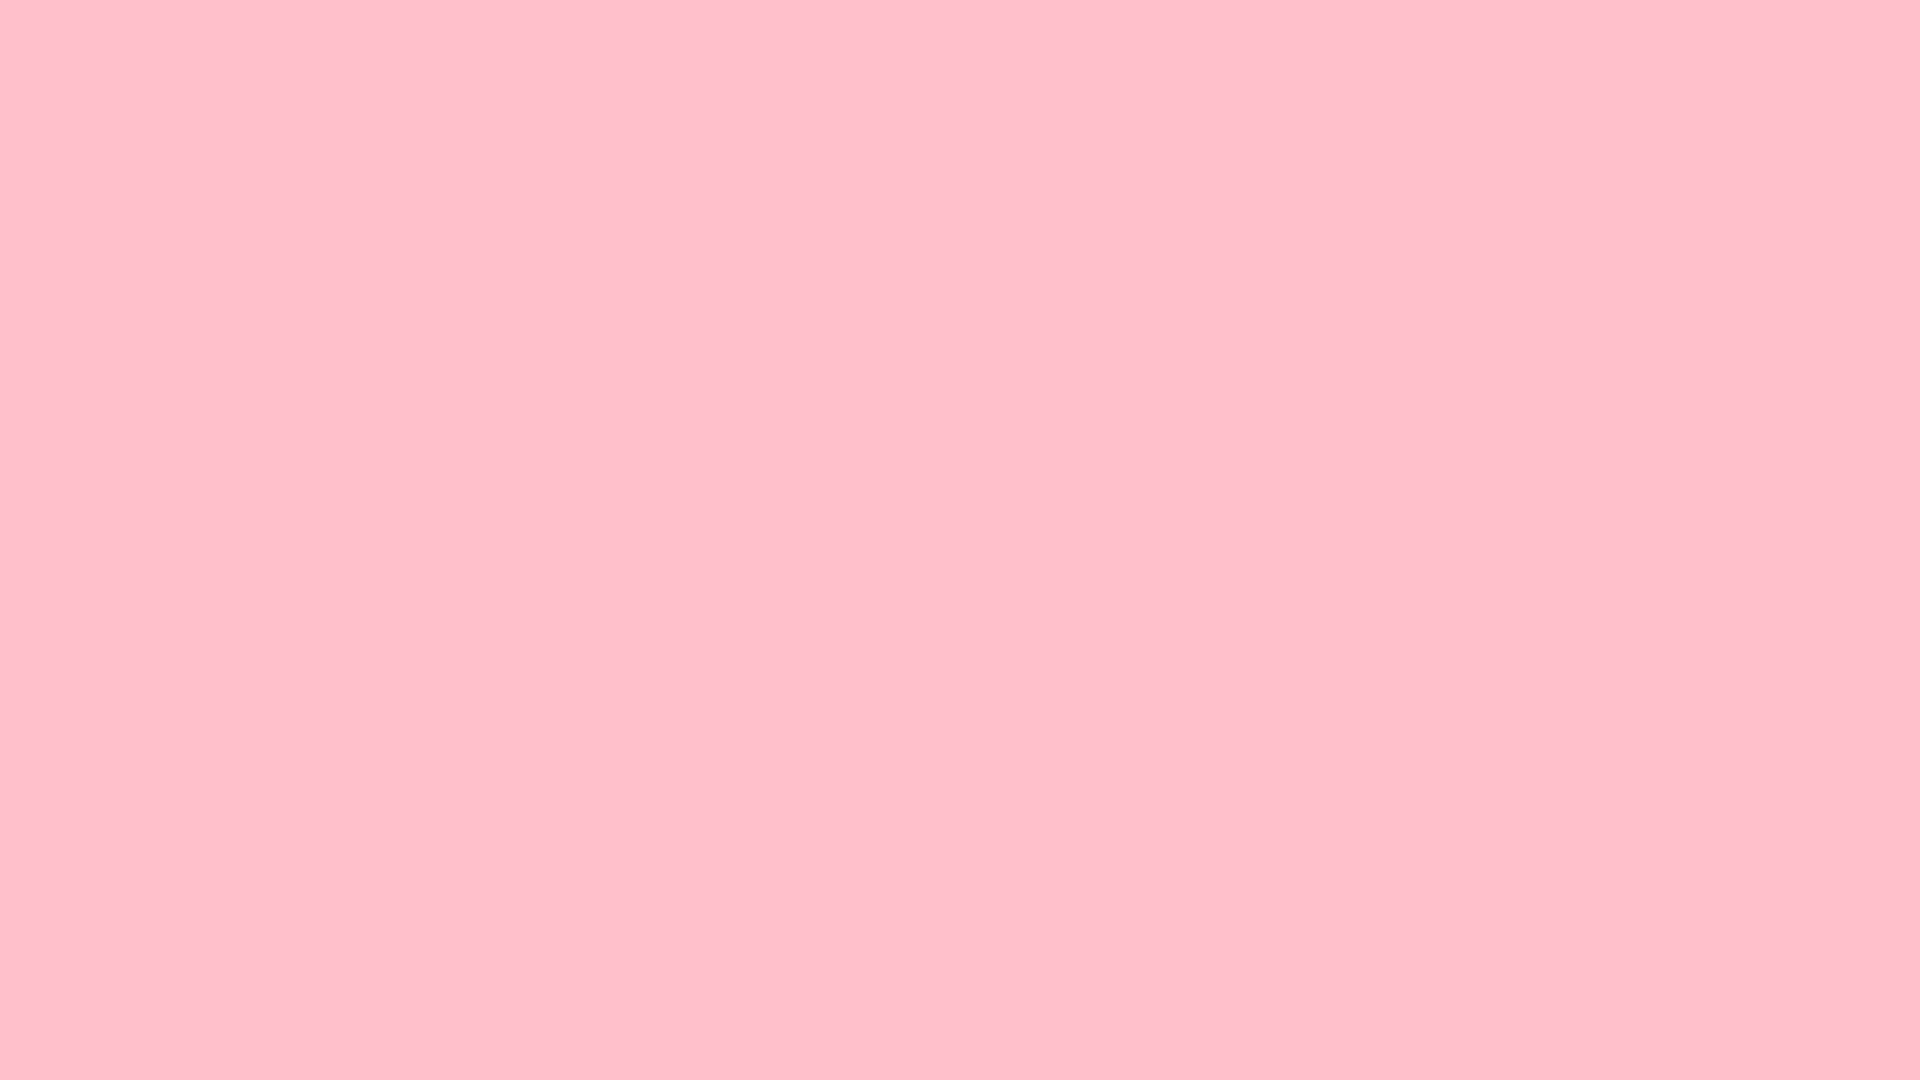 1920x1080 Pink Solid Color Background